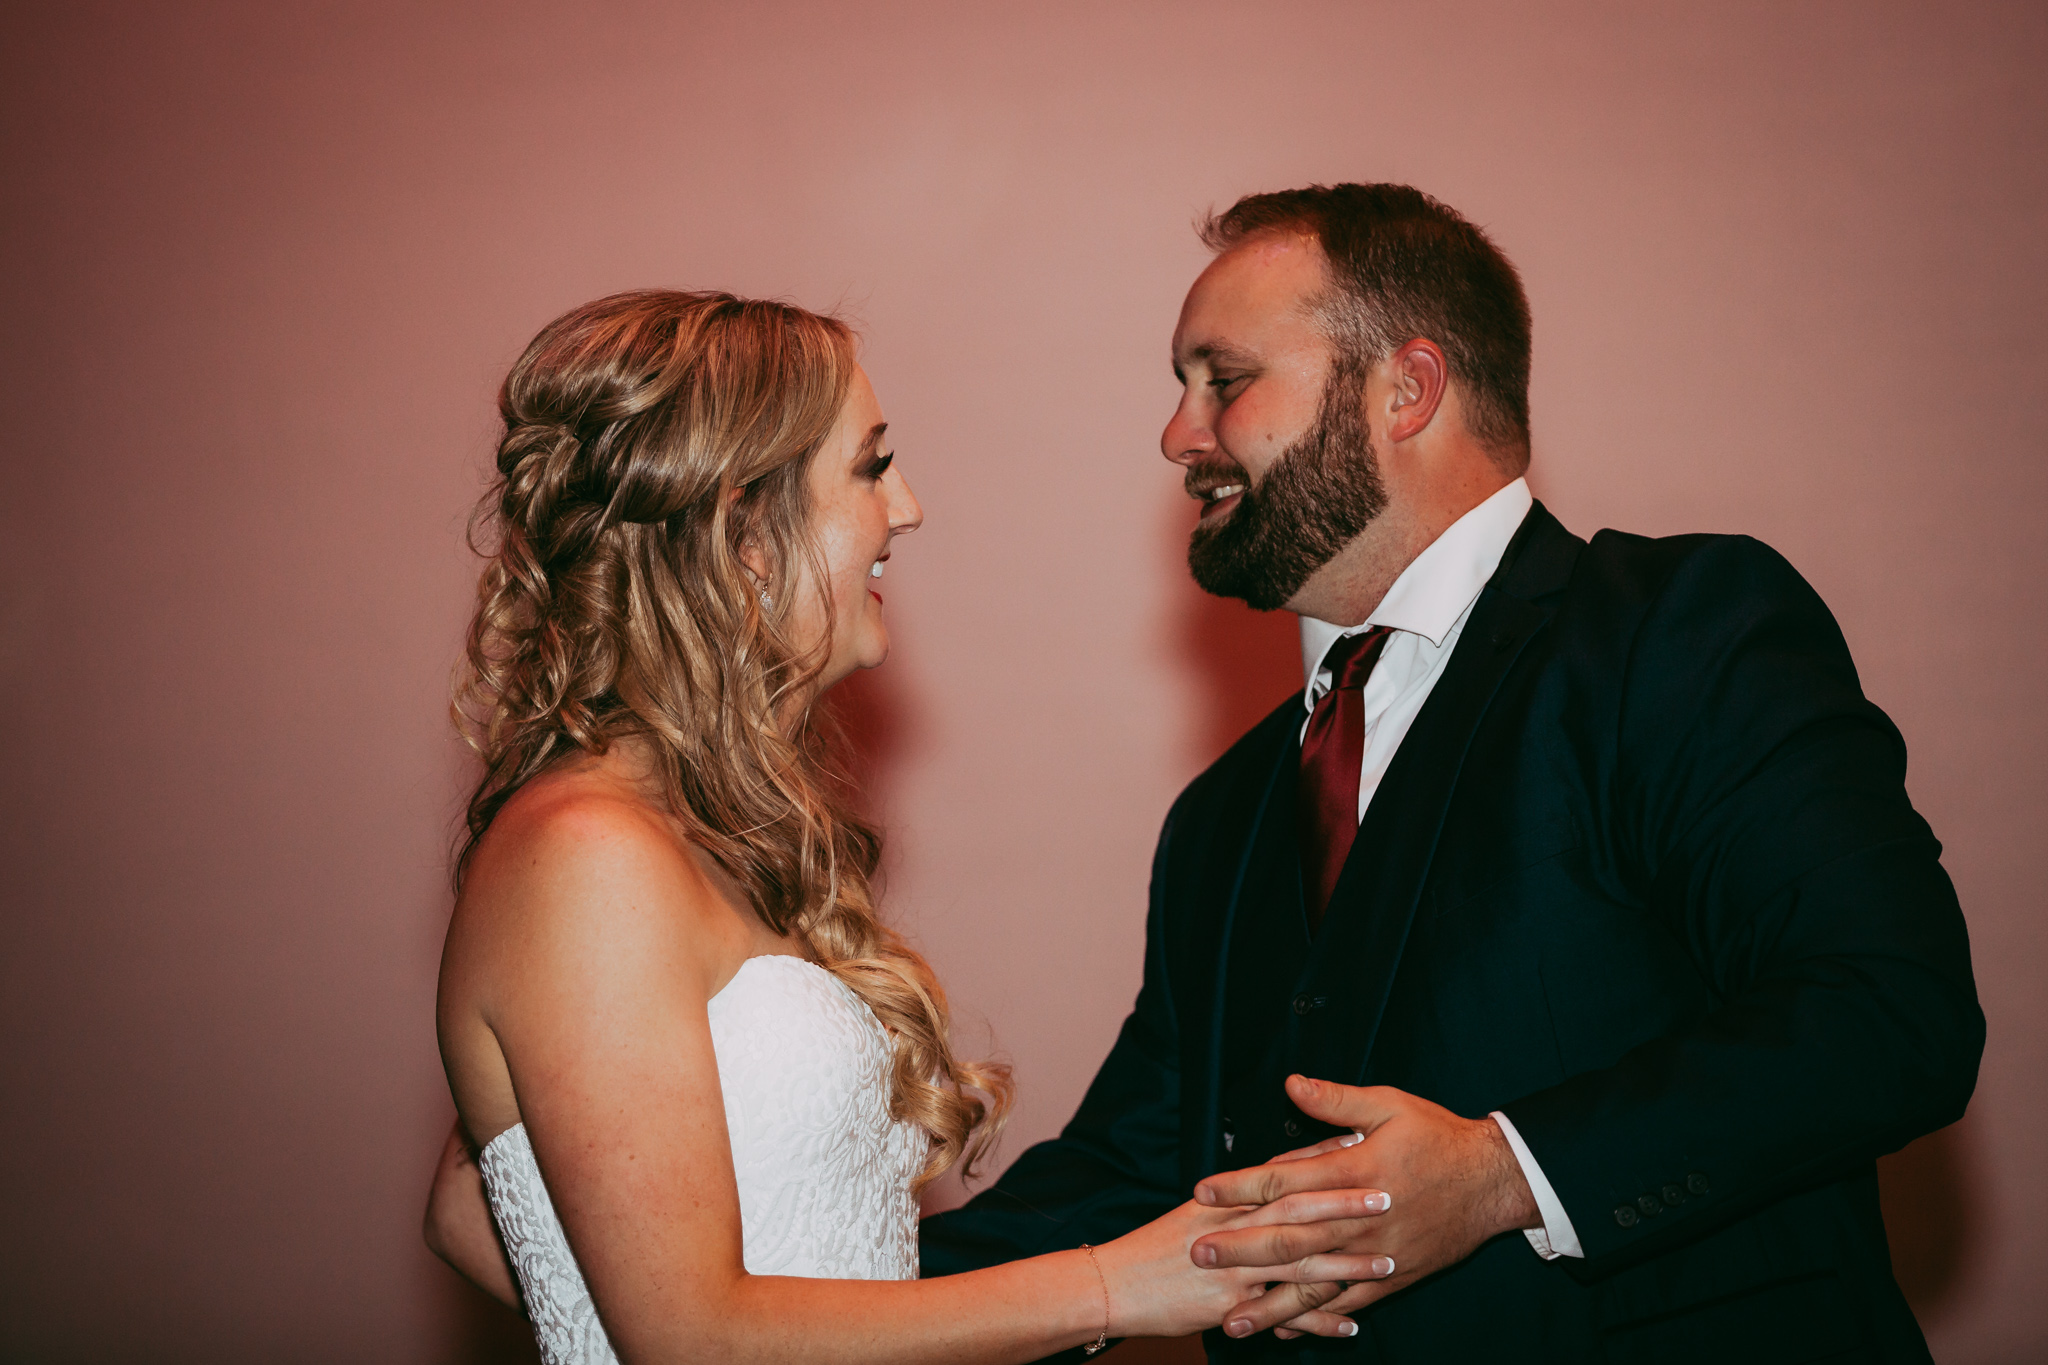 mollystevewedding-4285_September 30, 2017.jpg